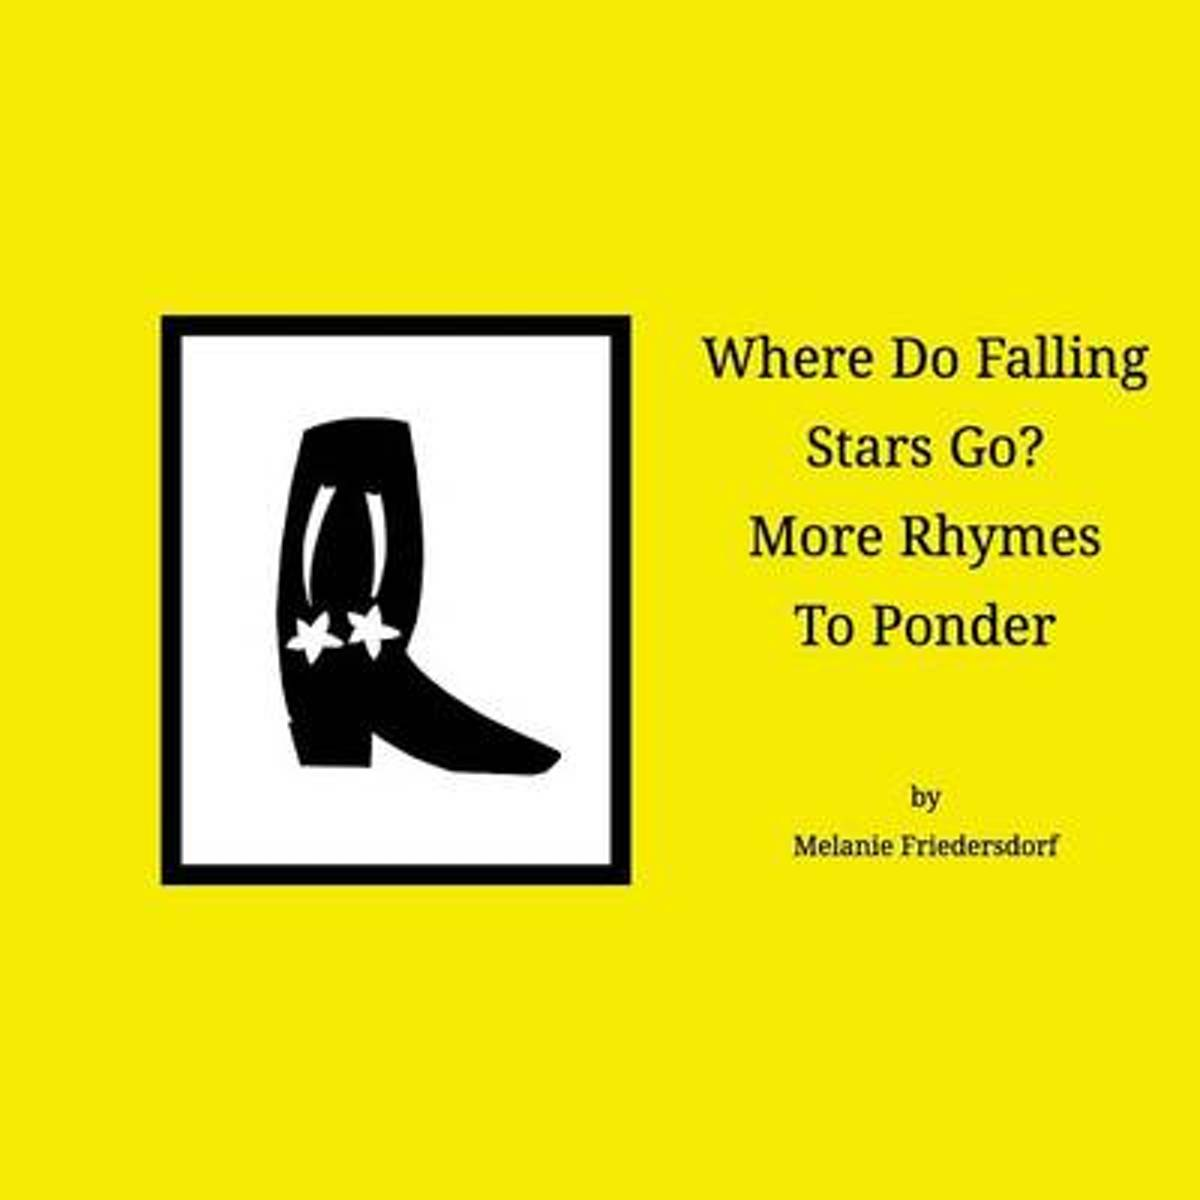 Where Do Falling Stars Go? More Rhymes to Ponder